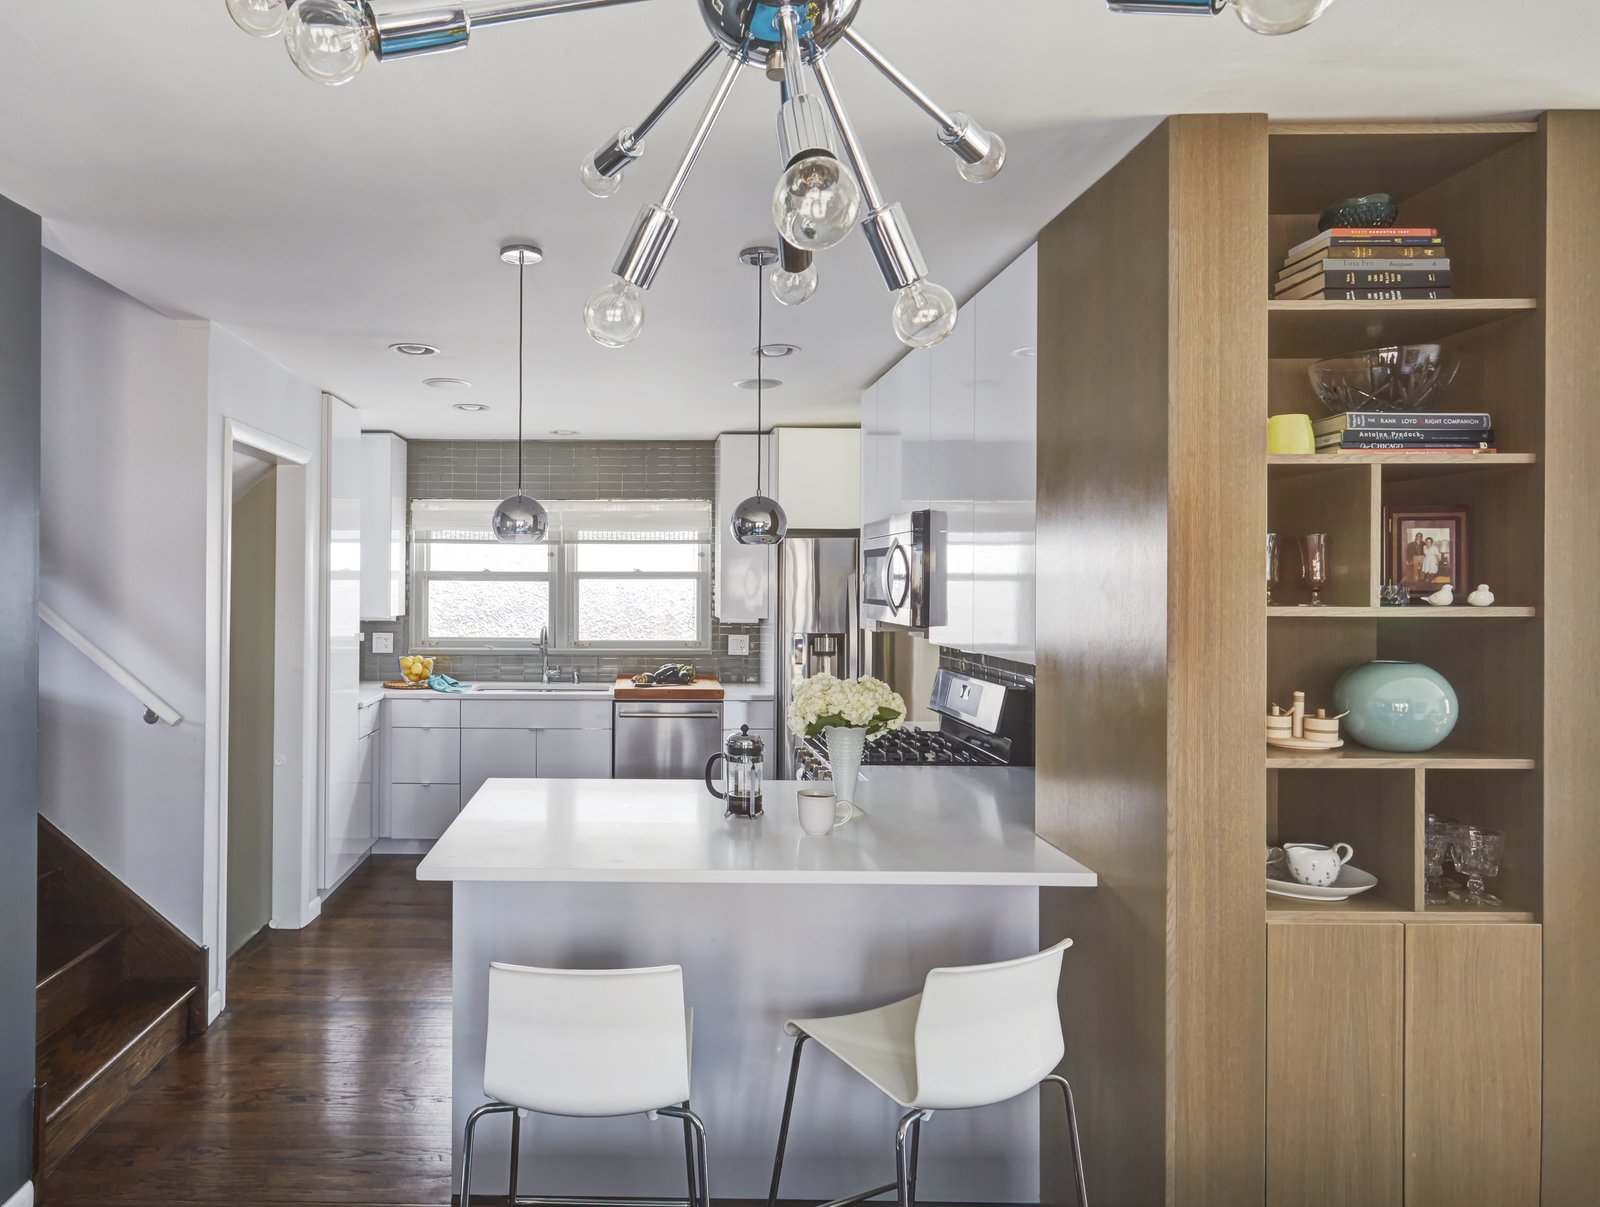 Clever Storage Solutions and a Shifted Layout Revive This 1950s Chicago Home